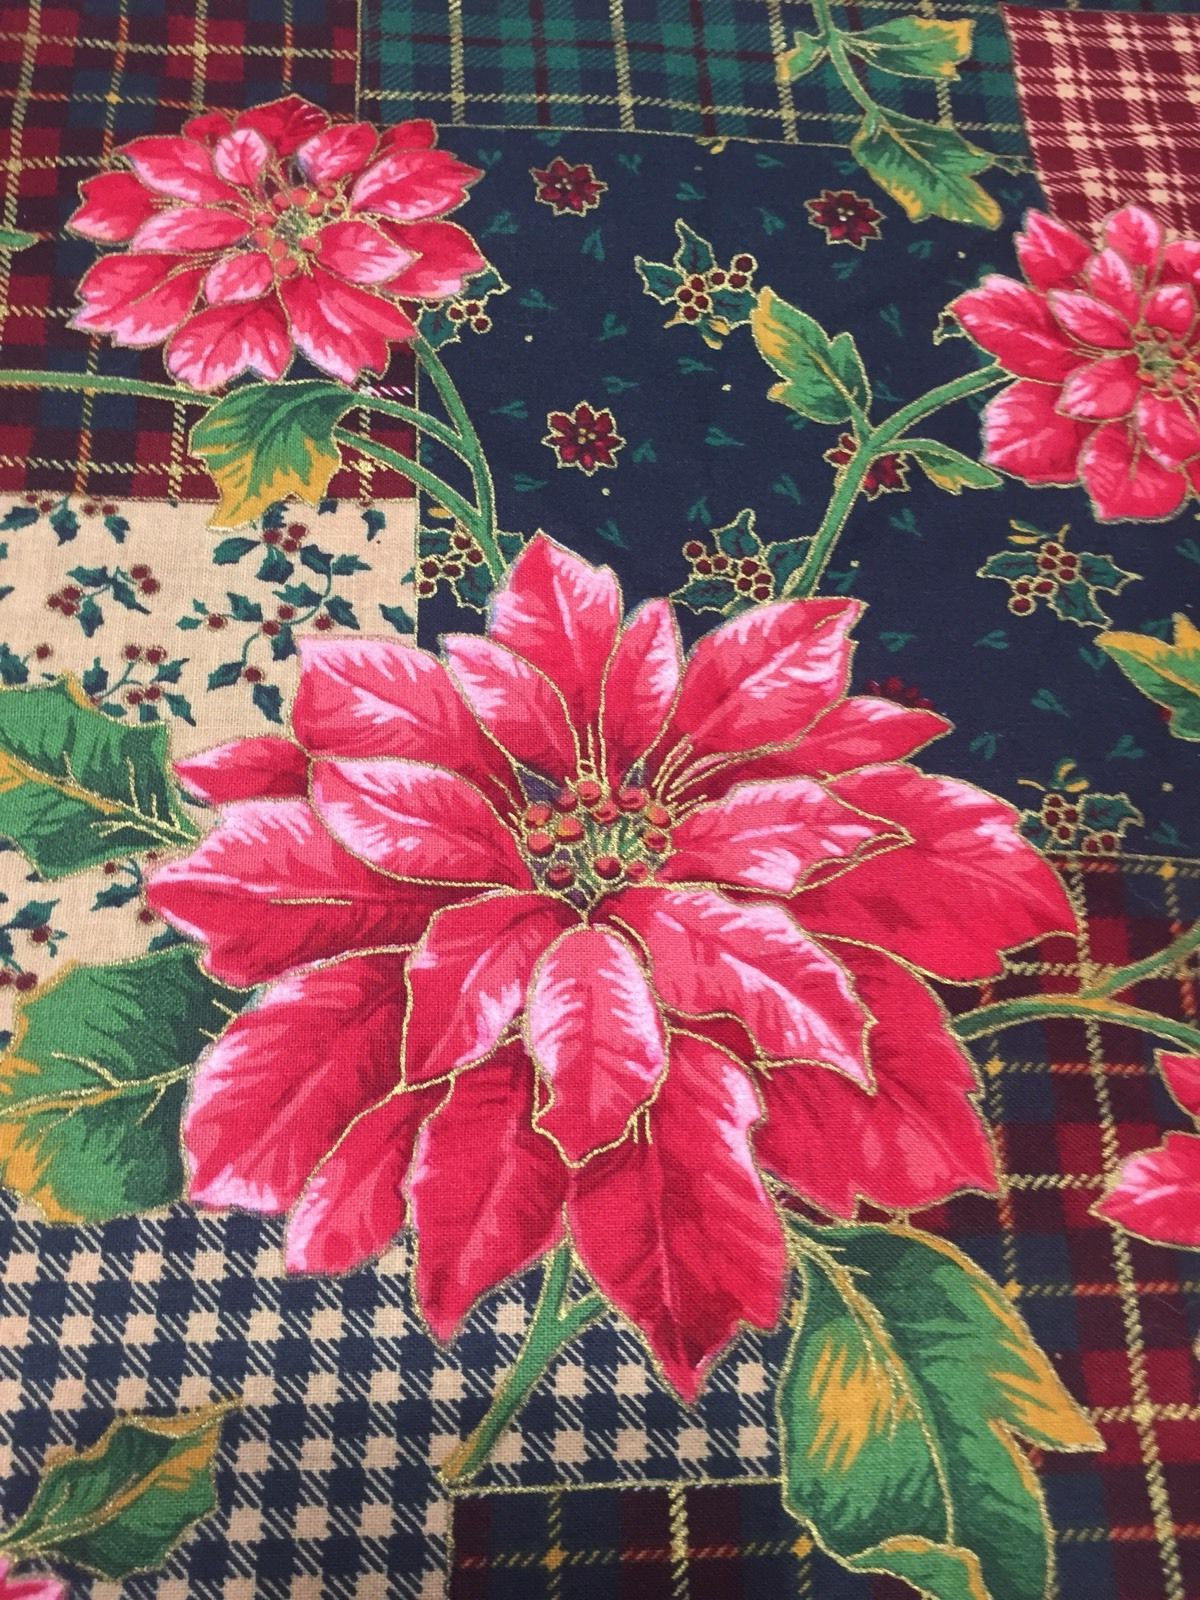 Red Poinsettia Cotton Fabric Patchwork Plaid Check Background Quilt Sew OOP 1 Yd